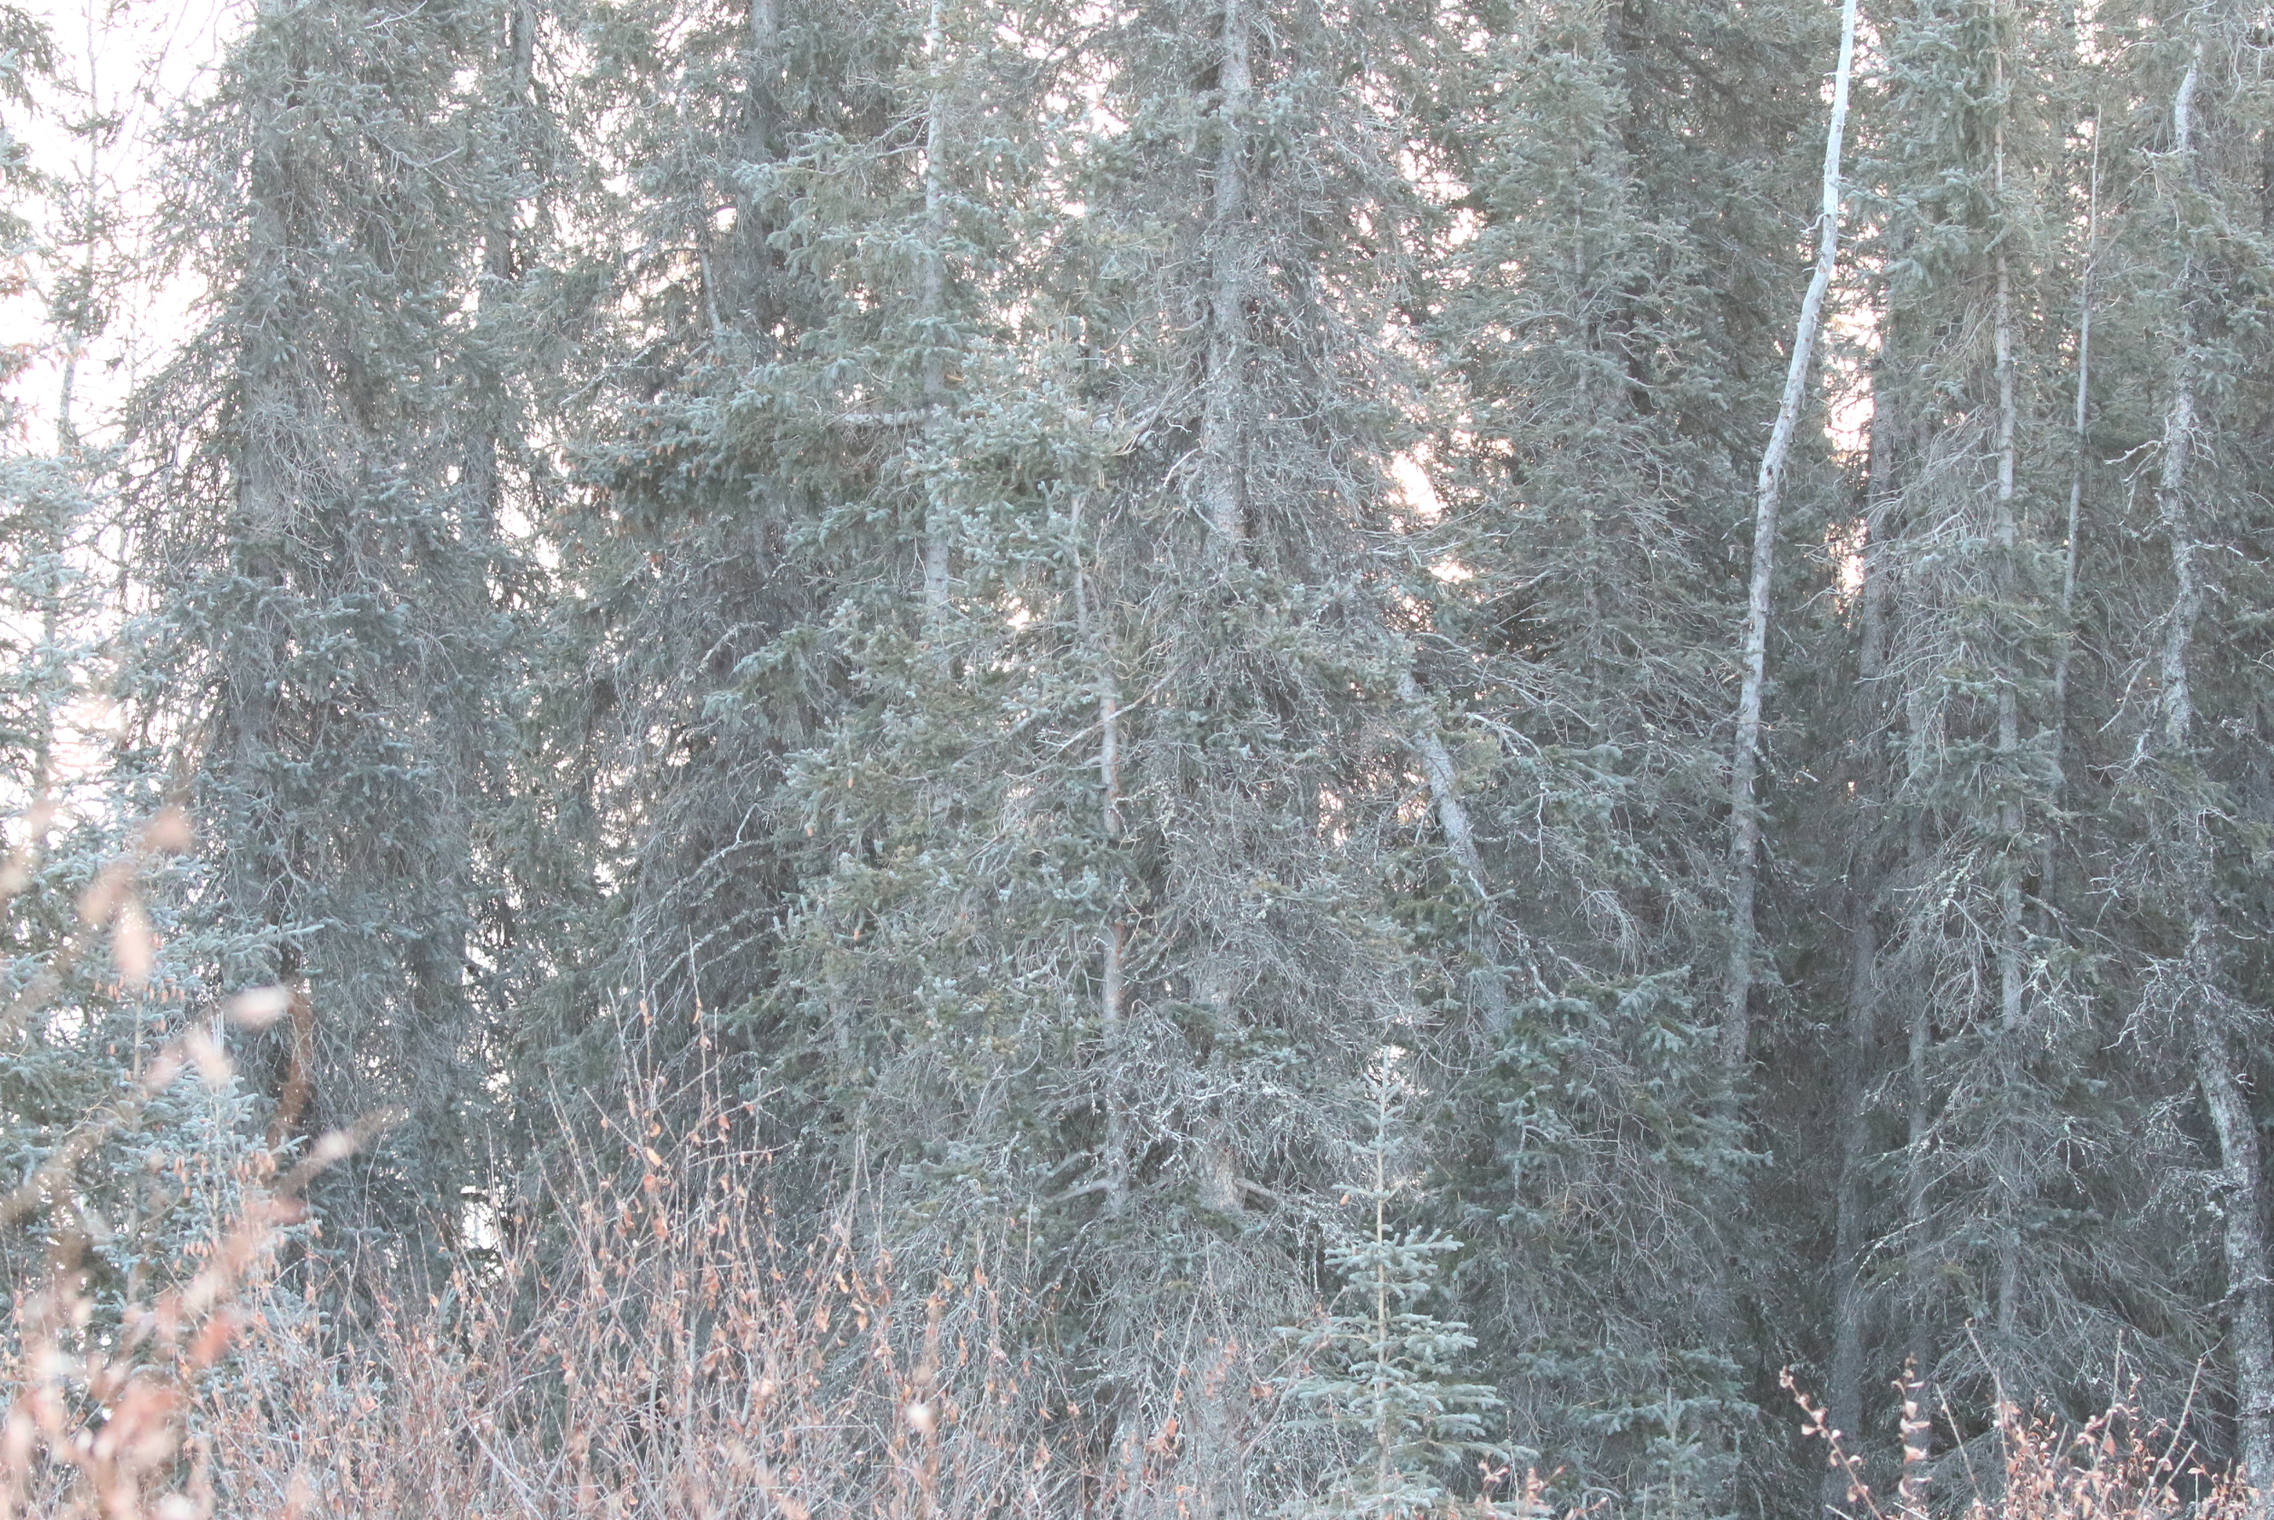 This picture was taken from where I was standing, showing the tree I saw the 'chickadee sp.' in. Middle tree, just above center is the spot I got the bird in my bins. This photo was taken at 400mm and is approximately the same view I had through bins, though slightly less magnified.